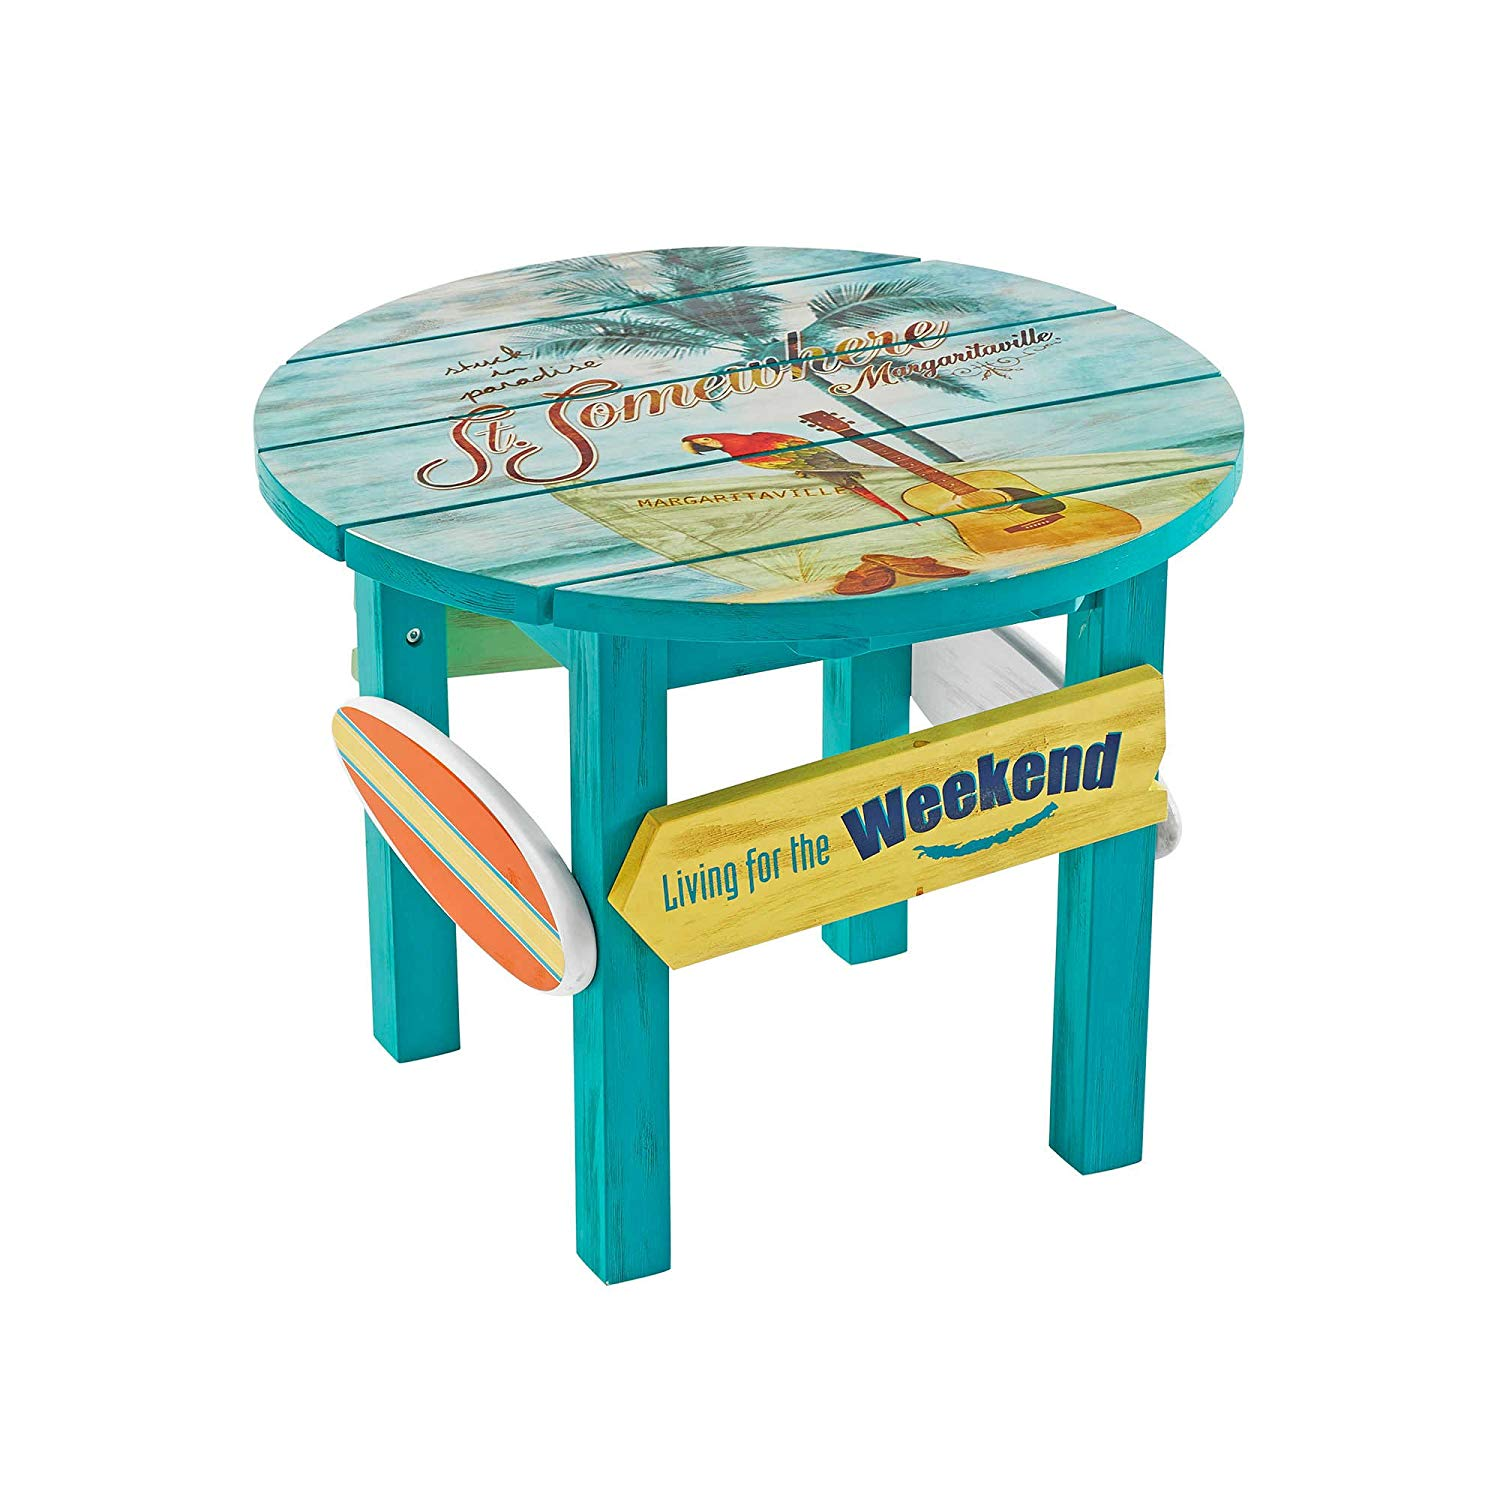 margaritaville outdoor classic wood round side table blue garden antique mosaic safavieh brogen accent ethan allen ladder back chairs nate berkus furniture best drum throne pier